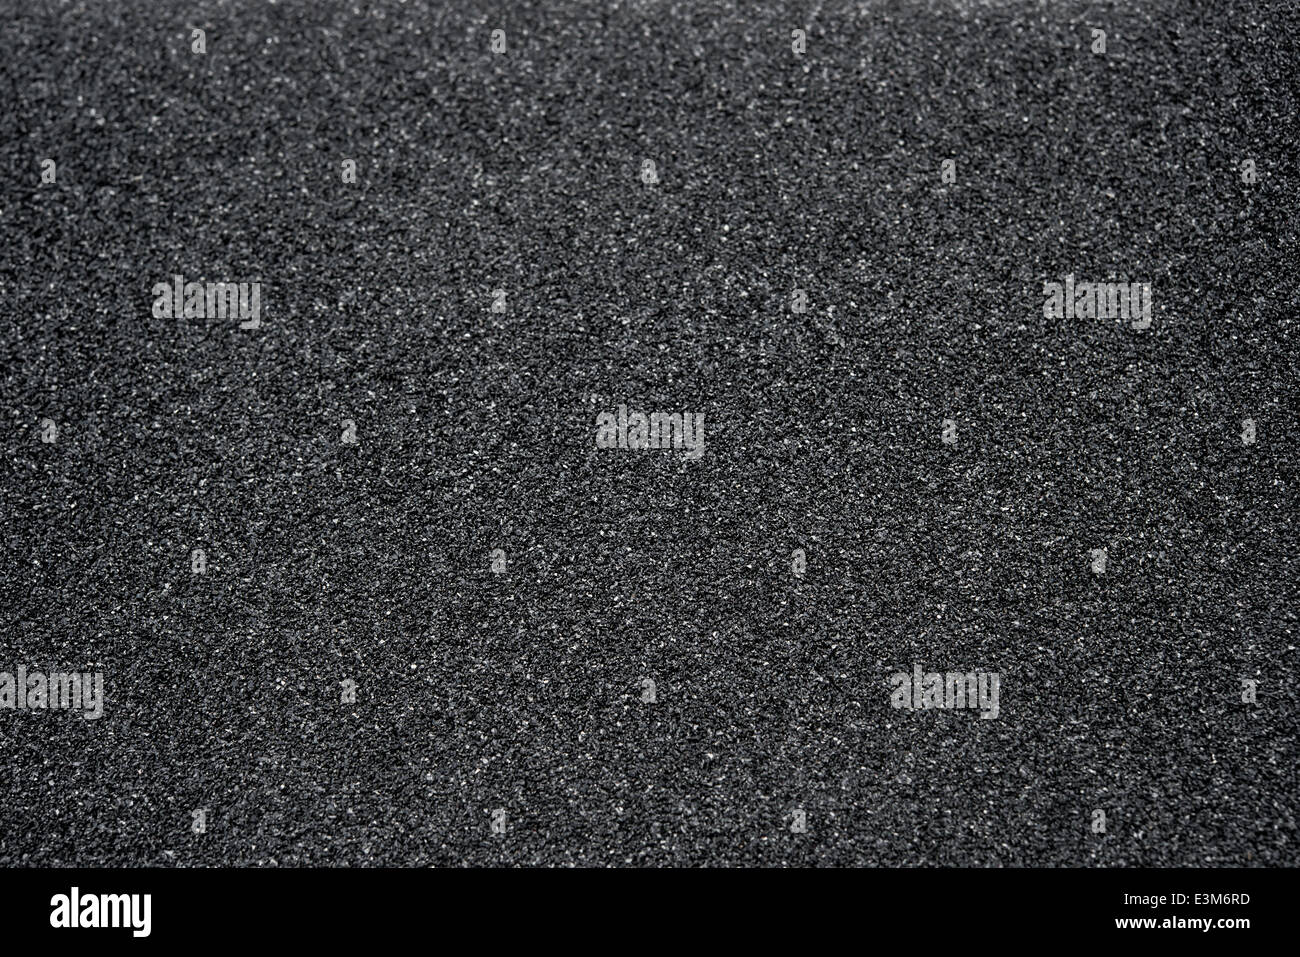 background of rough sand paper - Stock Image